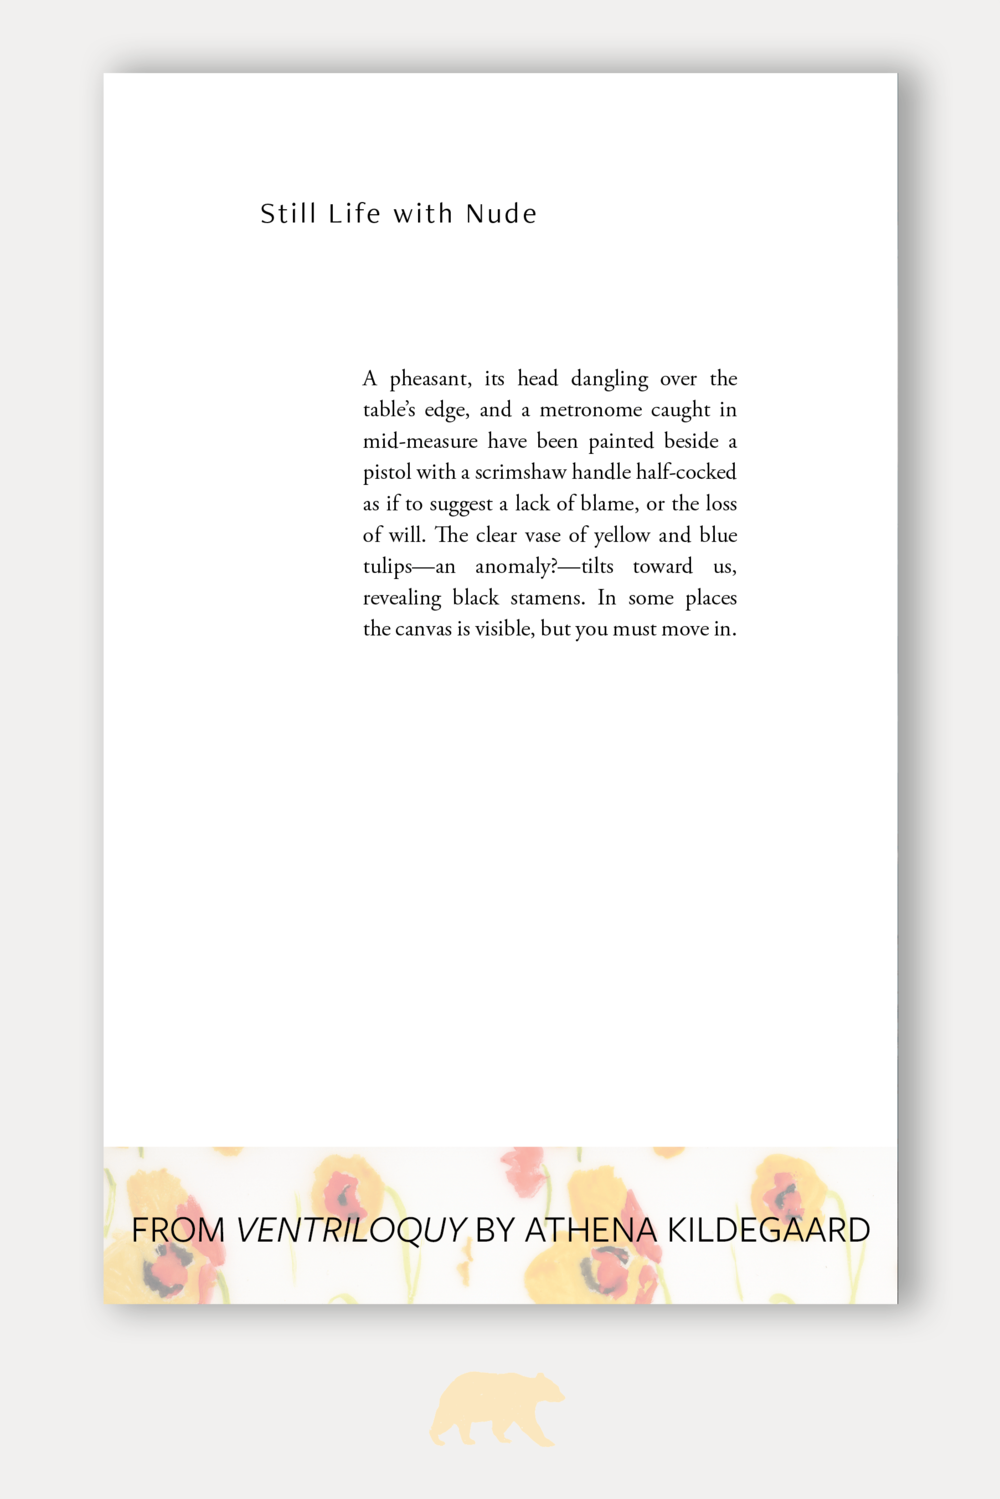 Interior Typesetting from Ventriloquy by Athena Kildegaard from Tinderbox Editions